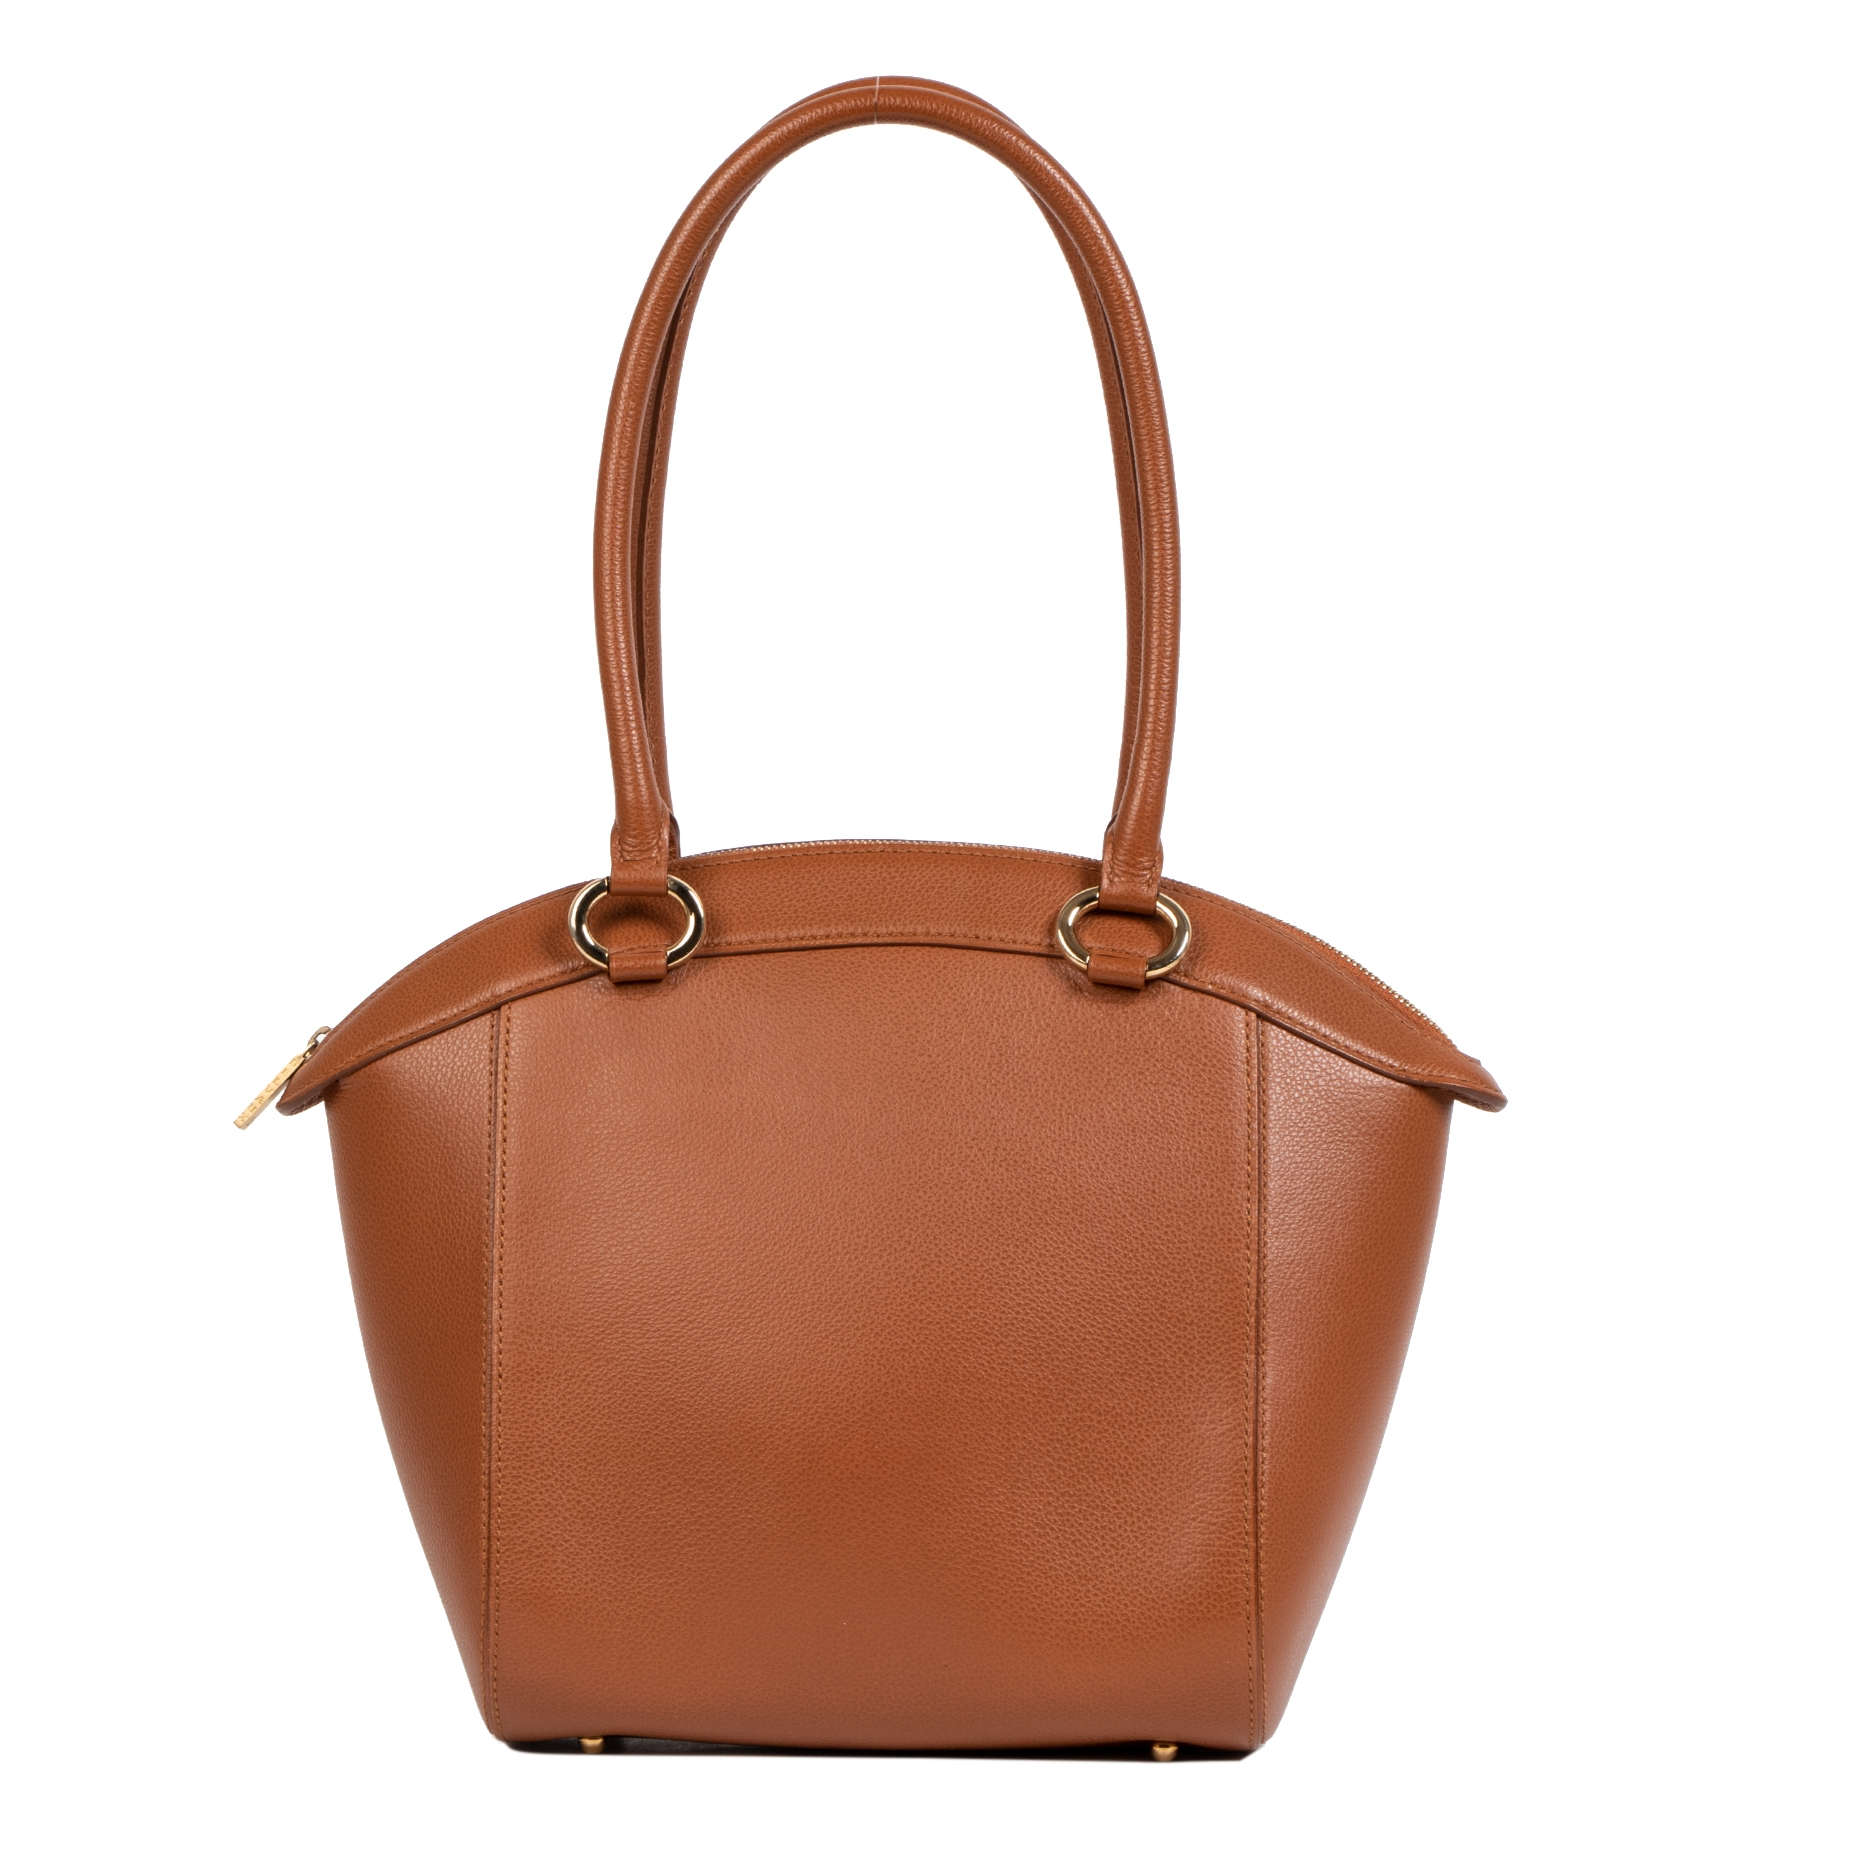 Authentieke tweedehands vintage Delvaux Camel Charme Shoulder Bag koop online webshop LabelLOV